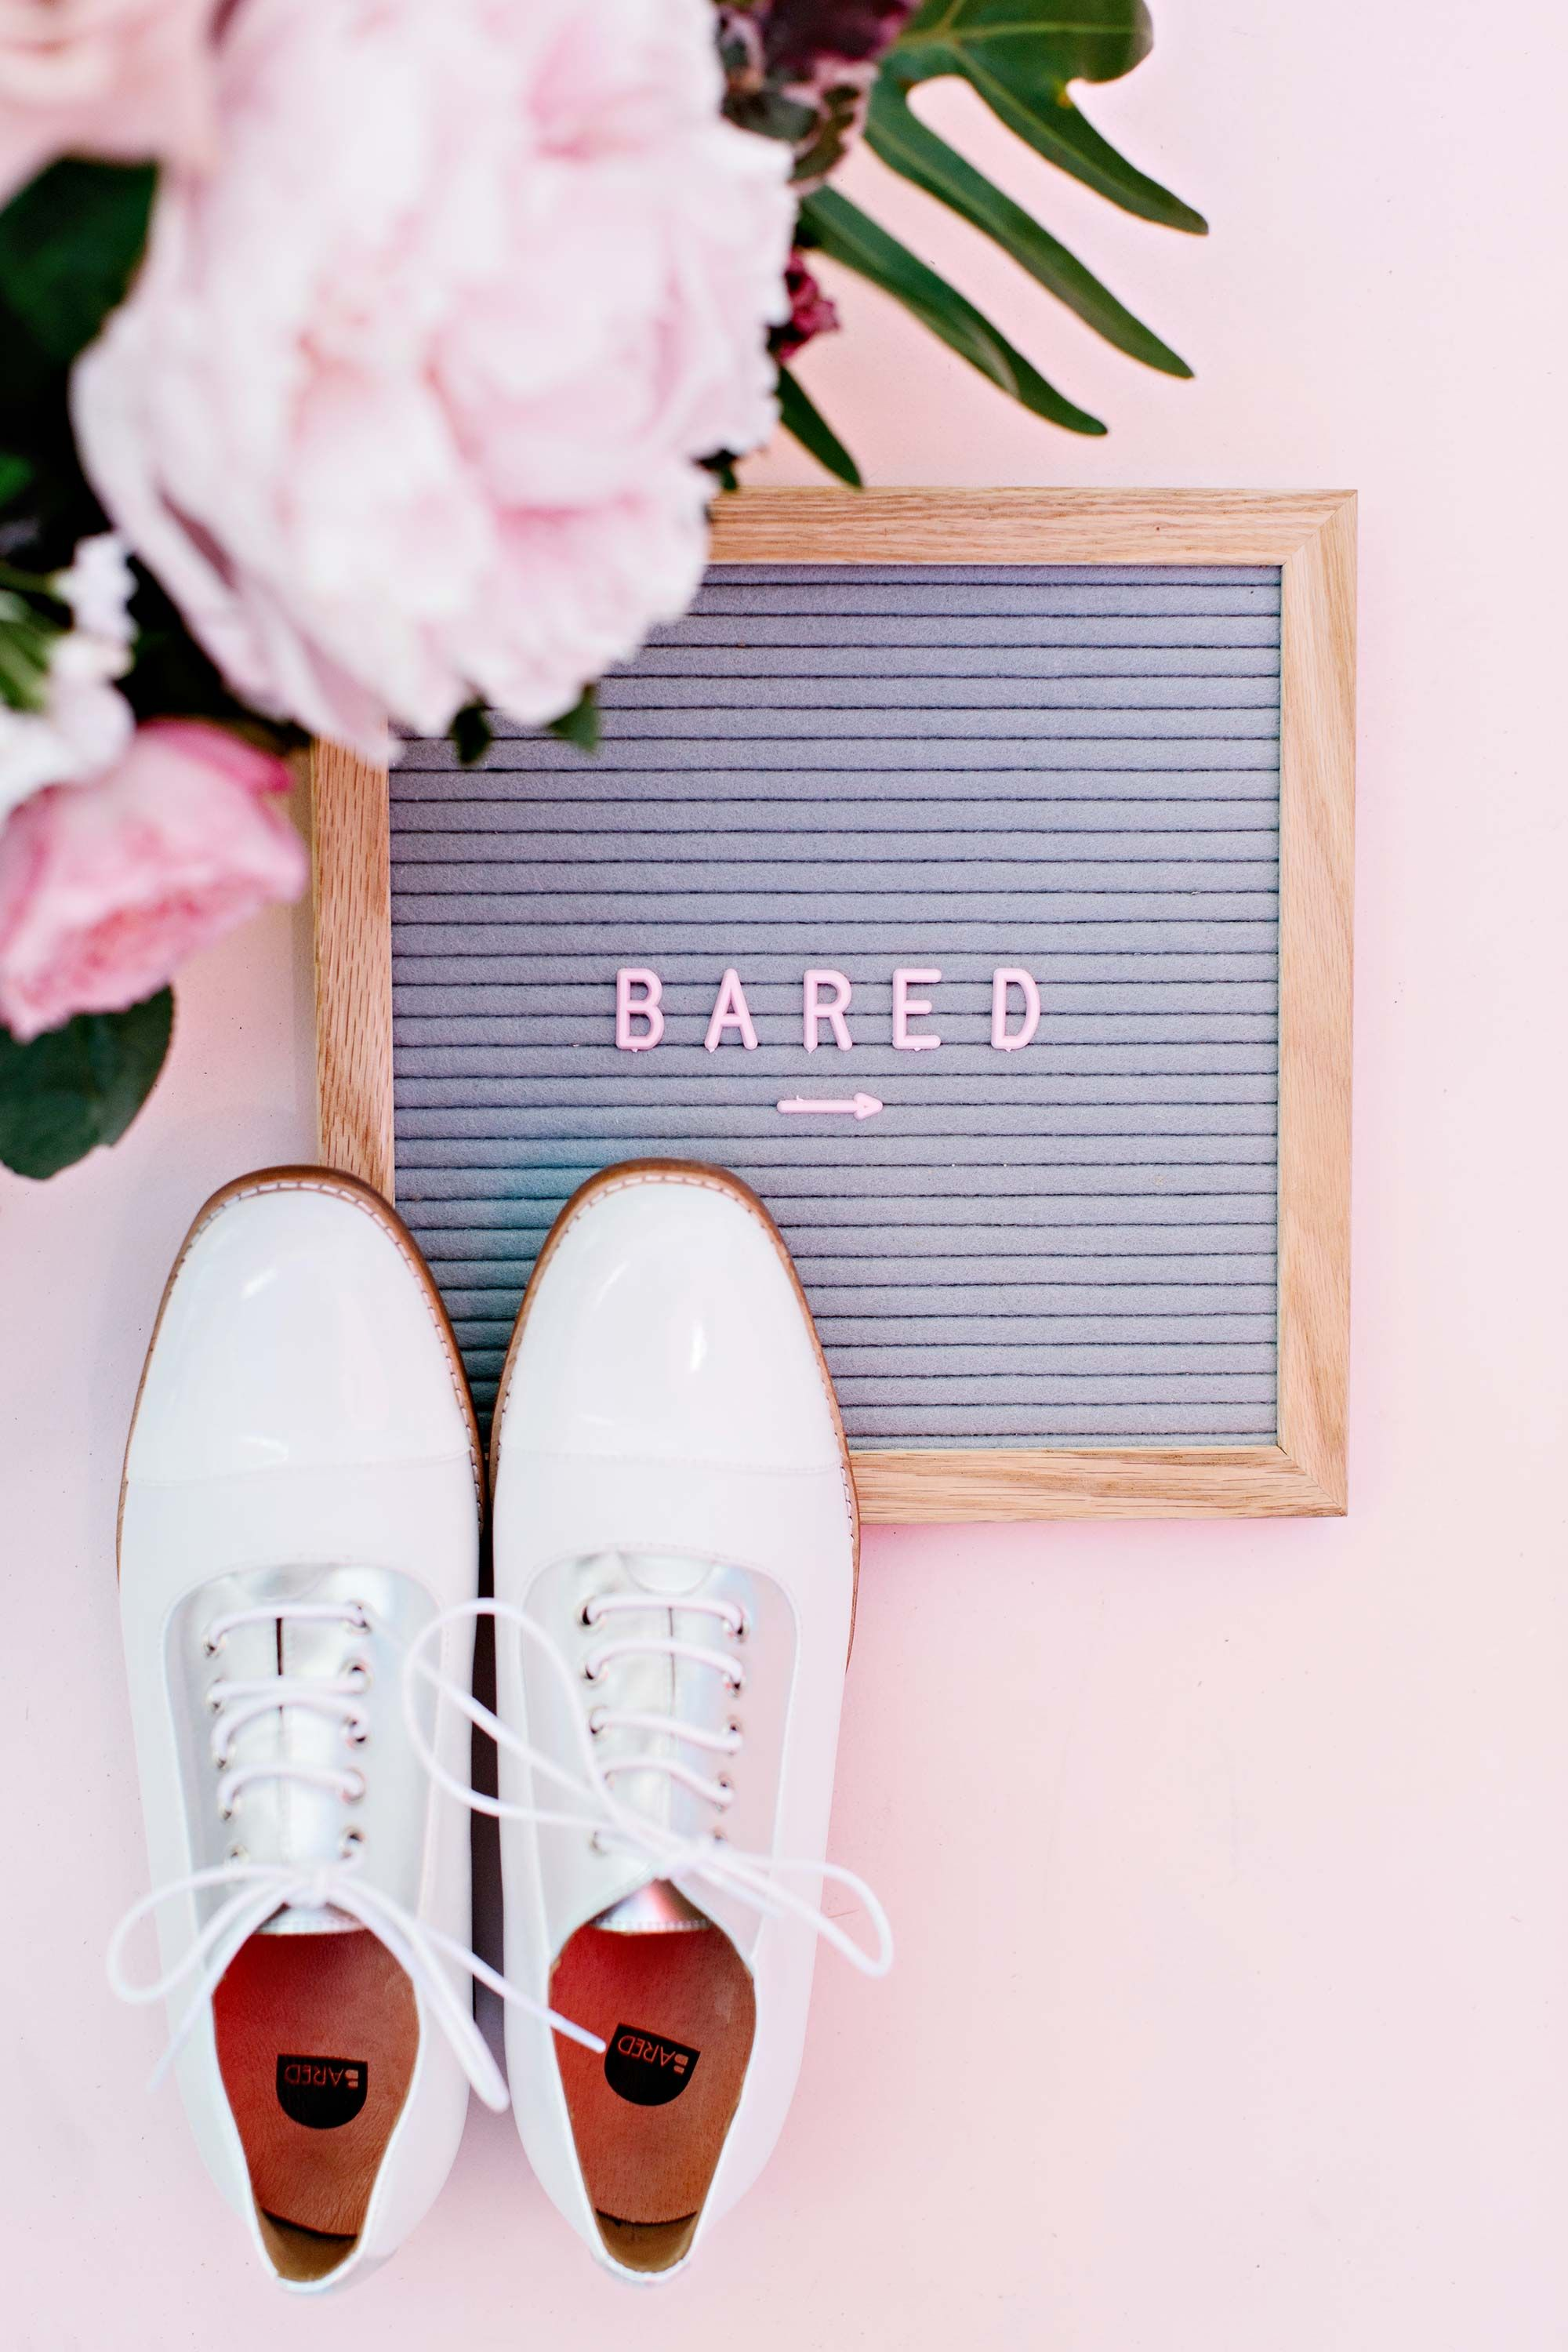 Bared_Footwear_Womens_Collaboration_Party_With_Lenzo_NYE_Styling_Wagtail_Lace_Ups